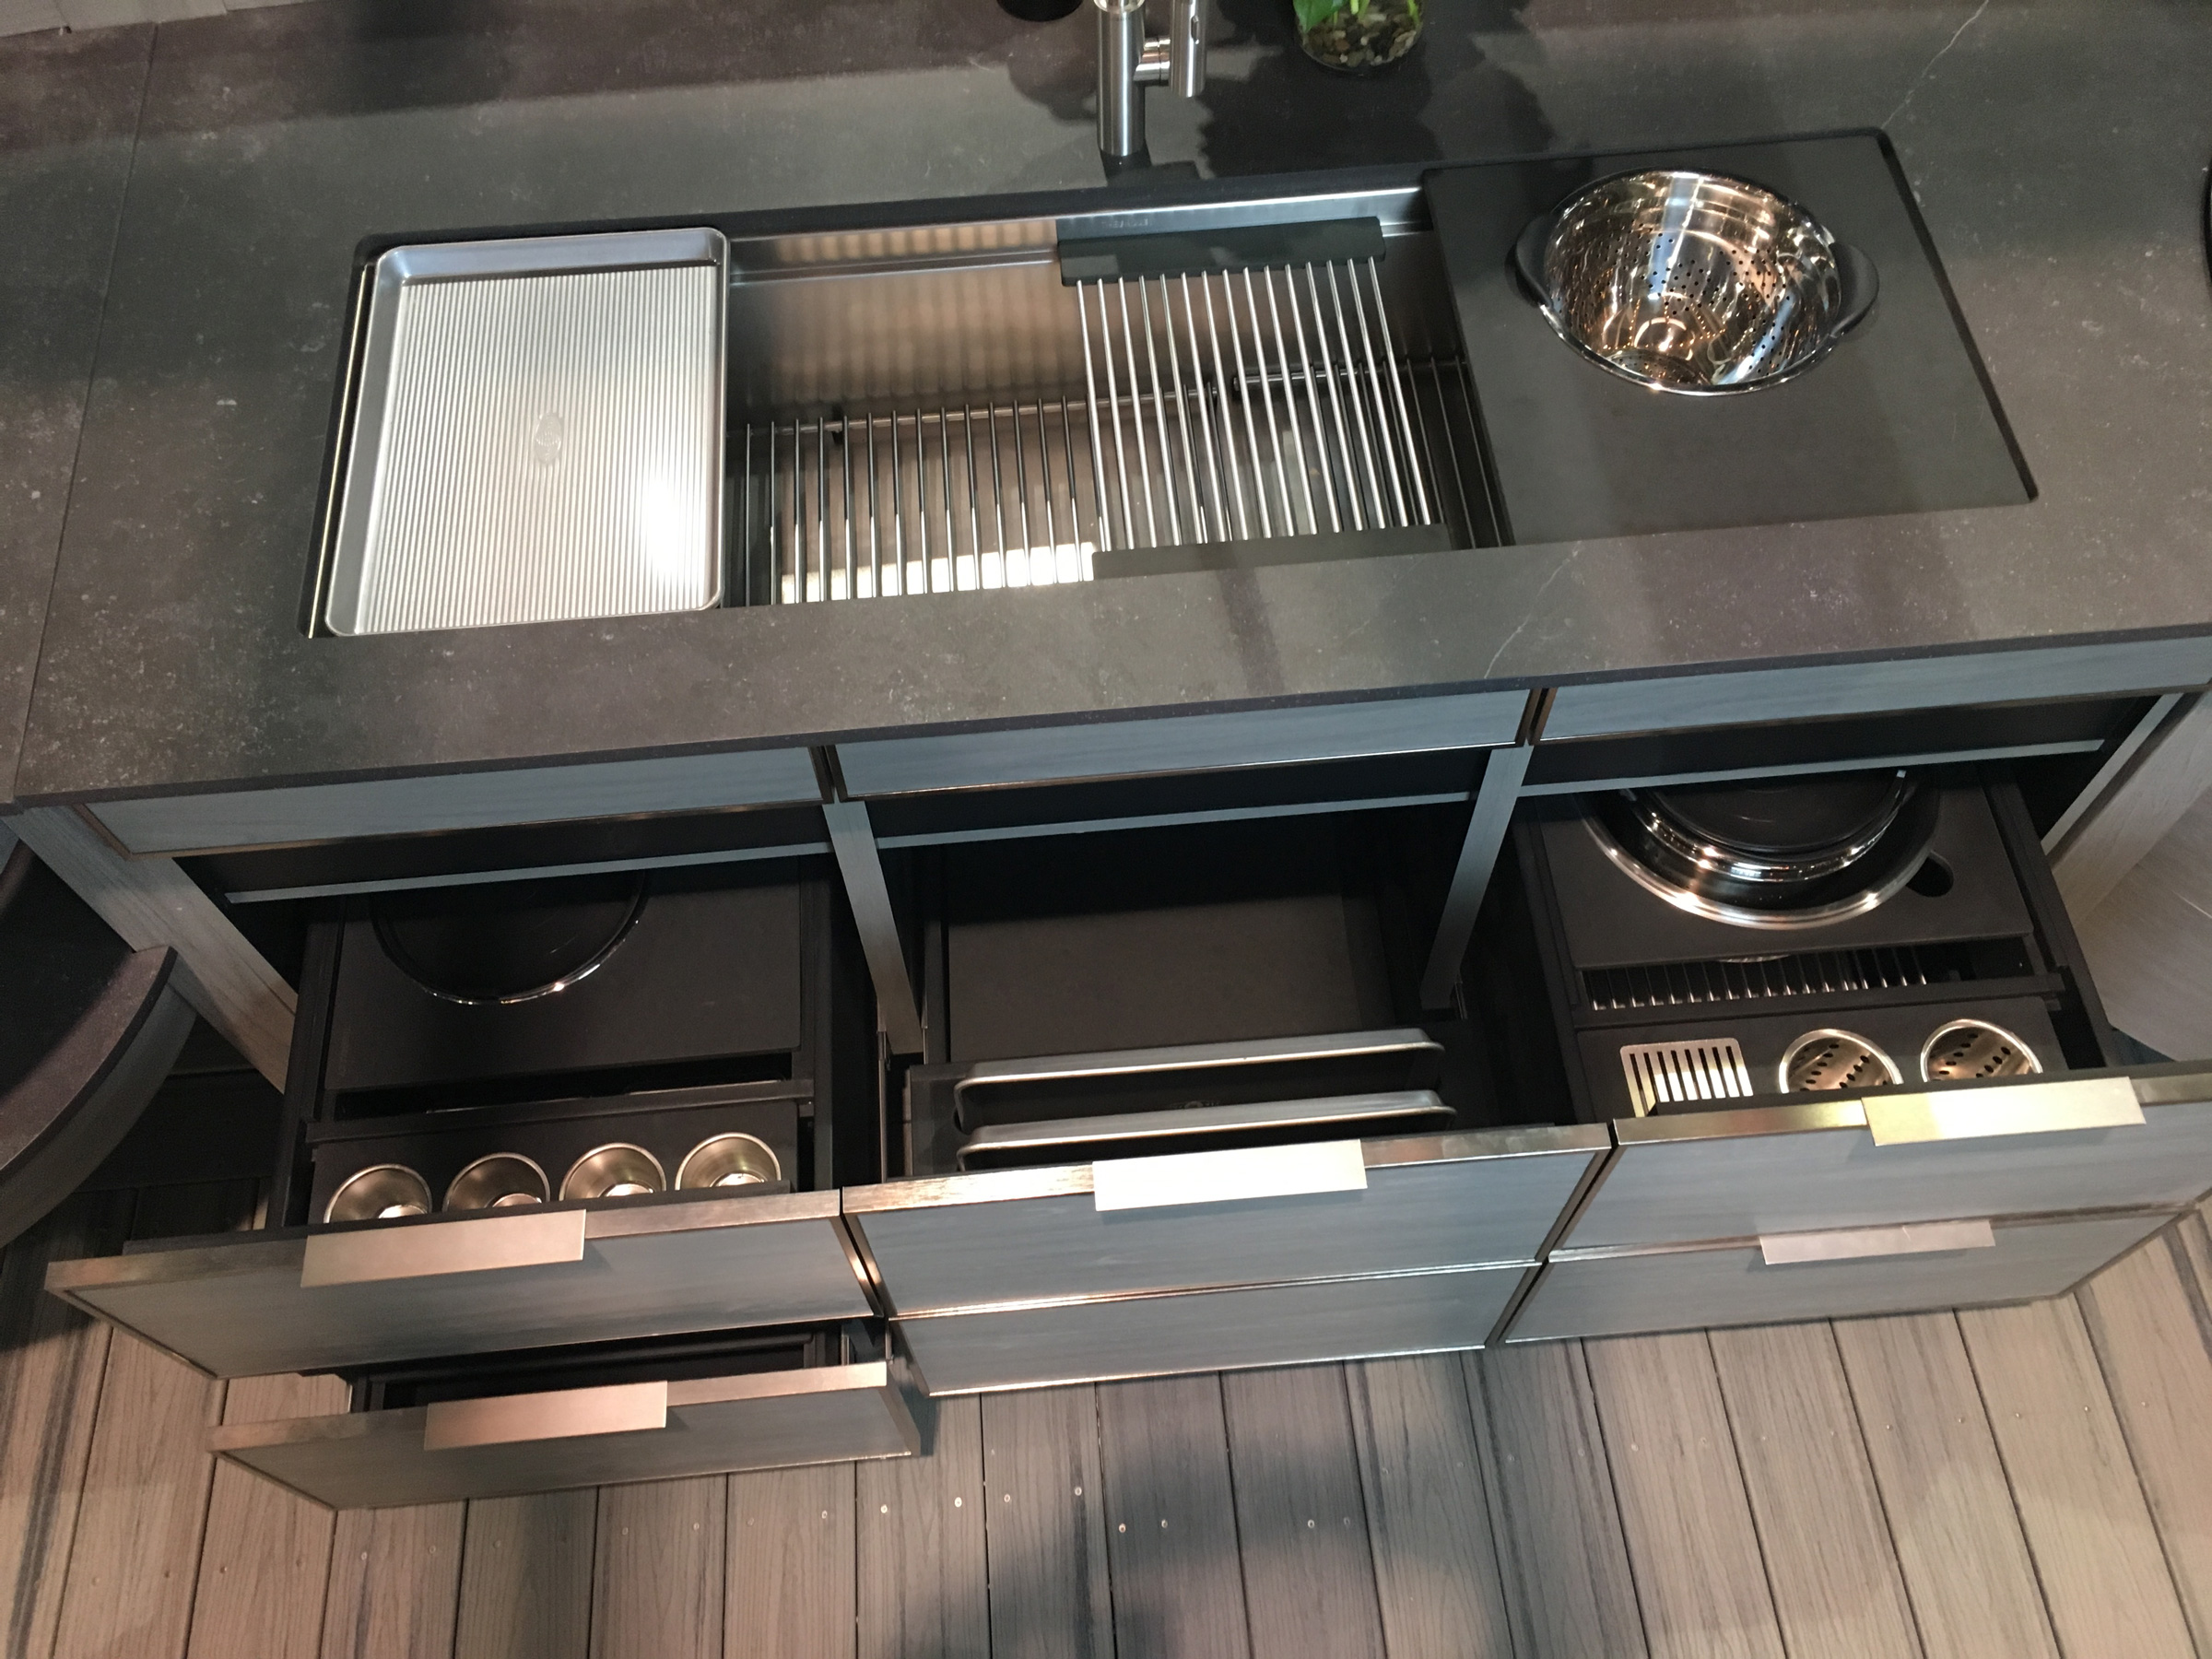 Improved Galley Suite Cabinets web